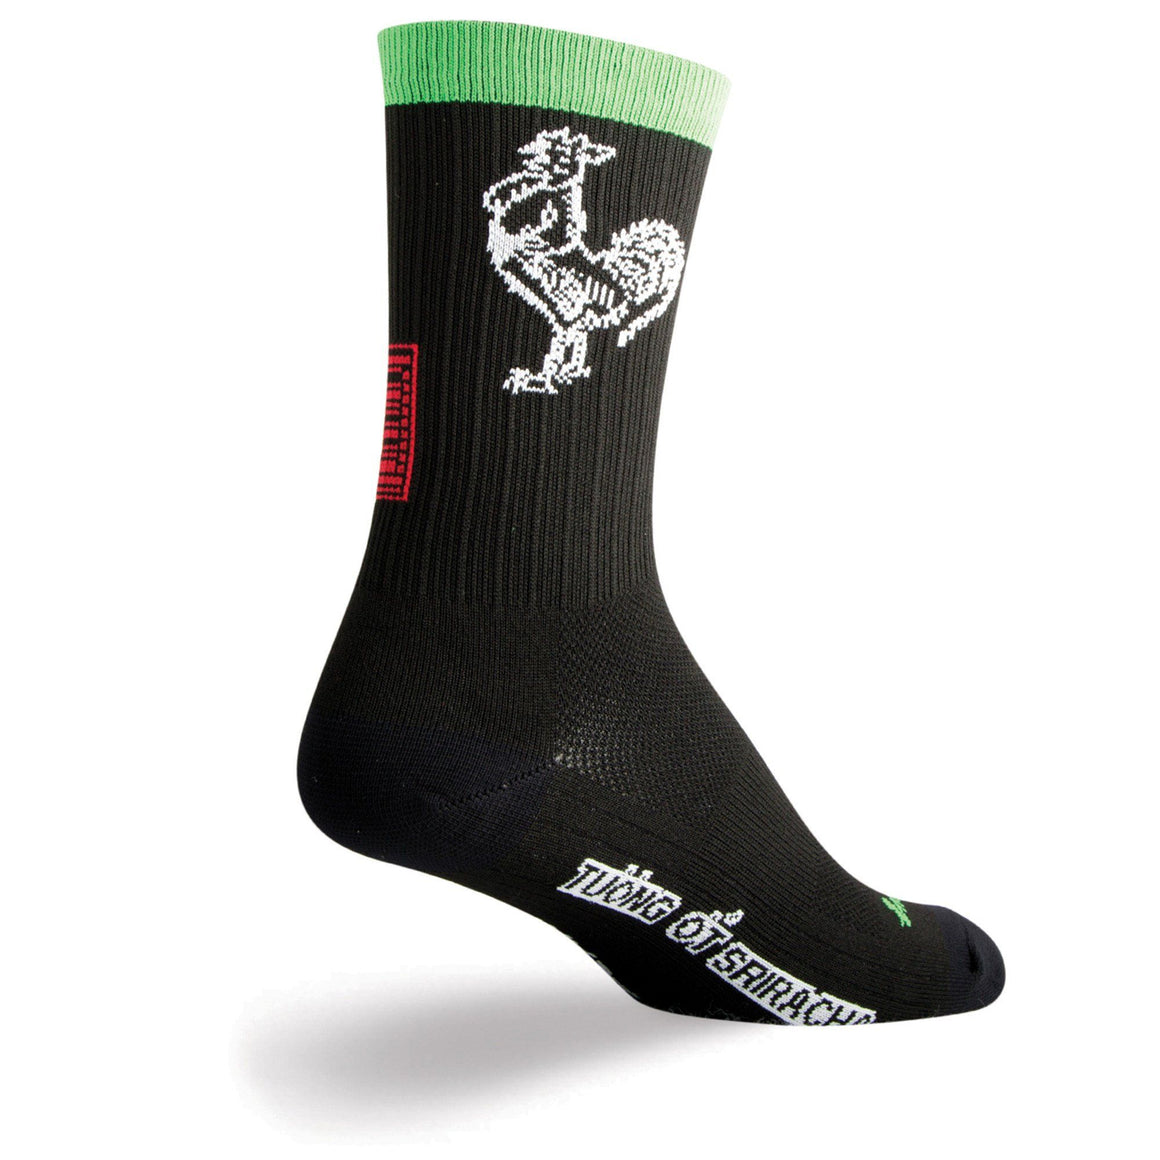 Apparel - High Performance Sriracha Socks